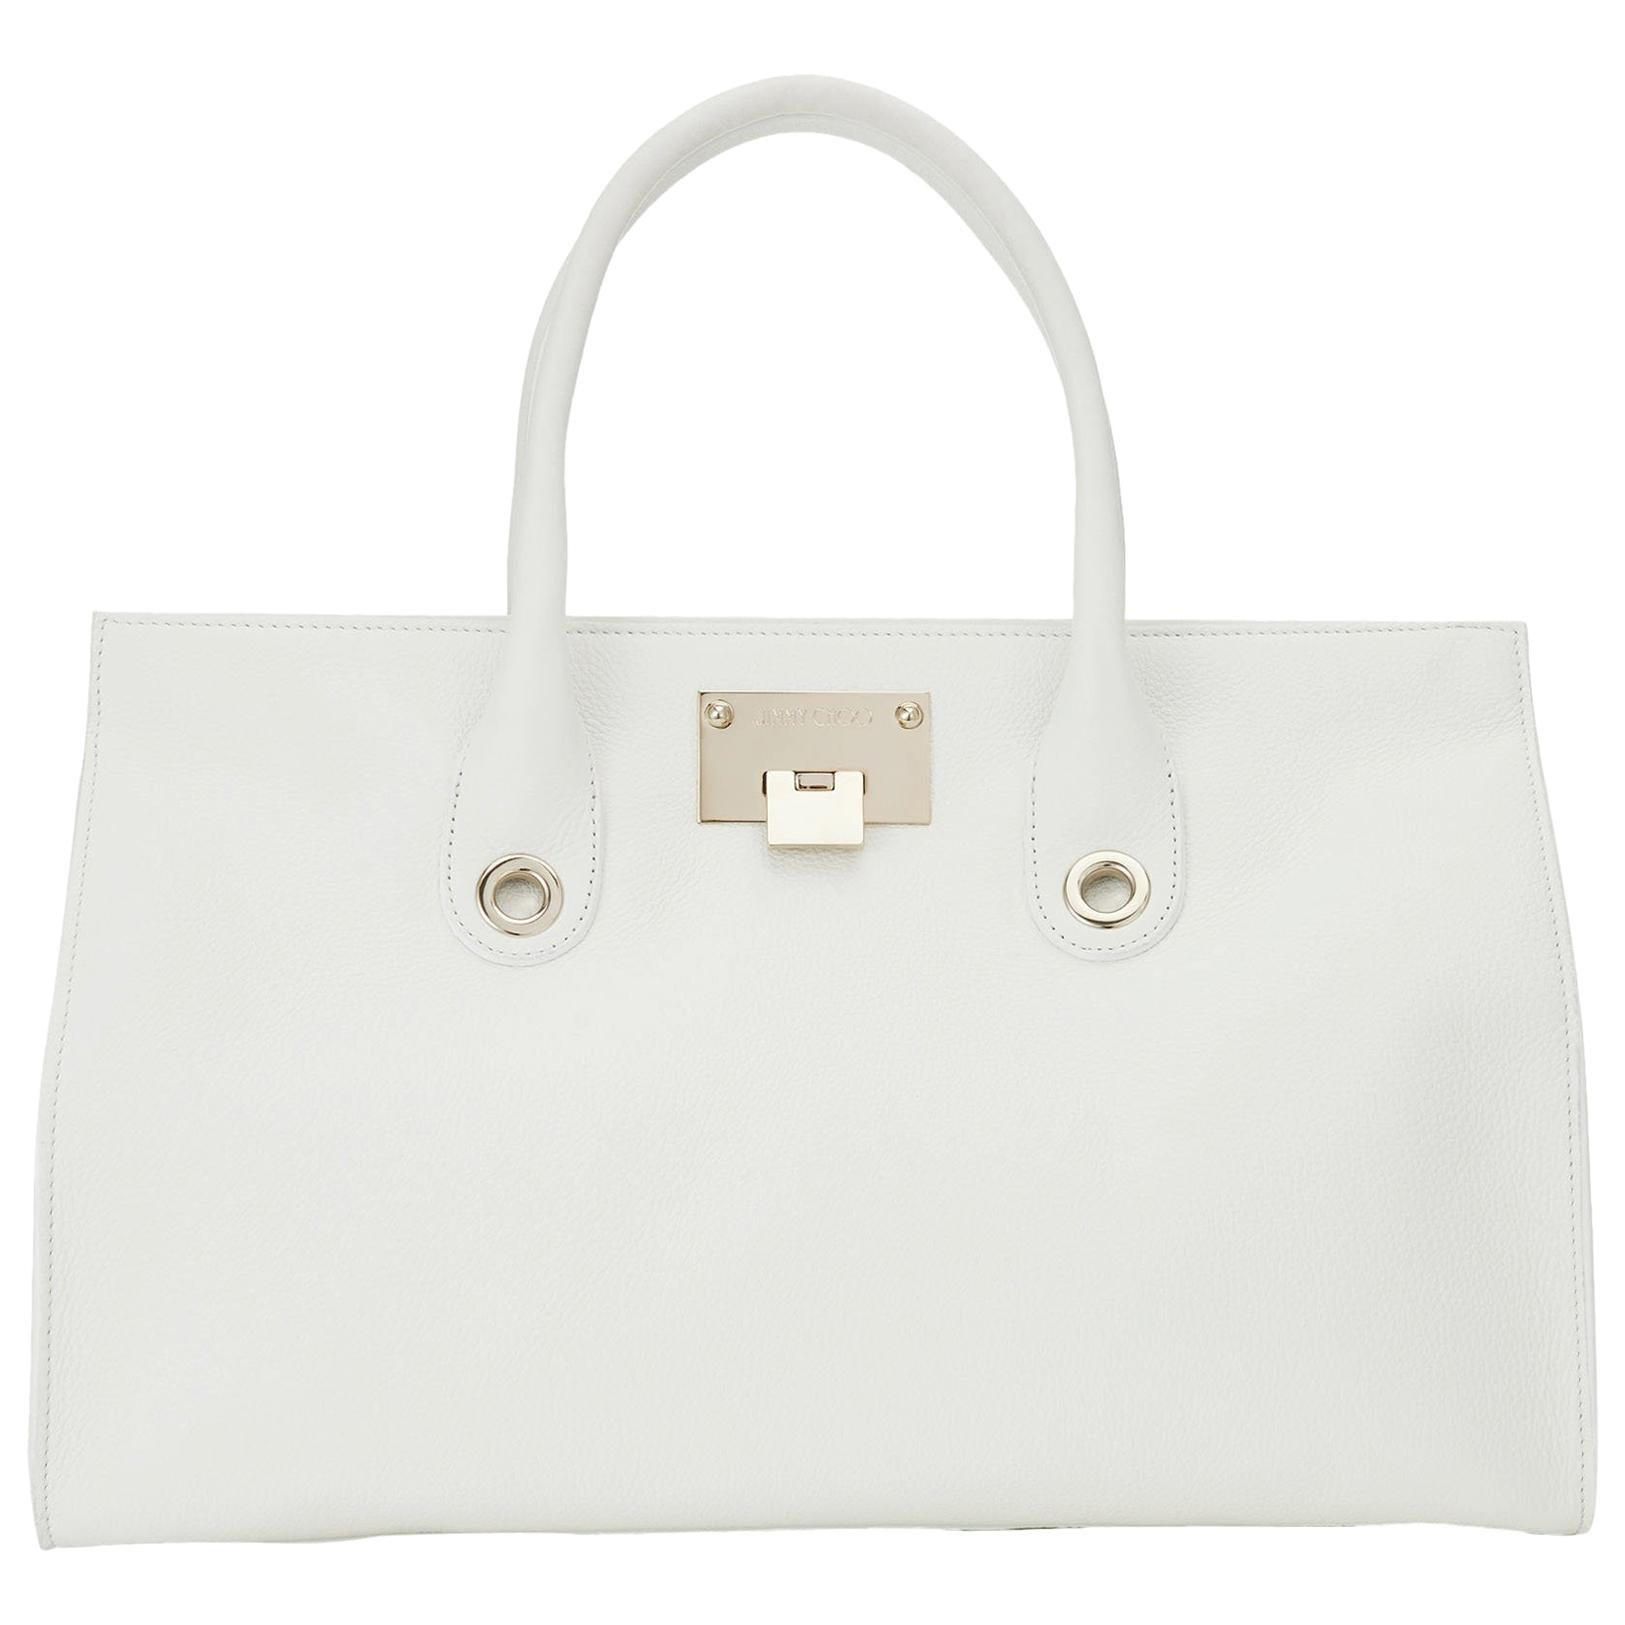 2b43eed0ab New Jimmy Choo *Riley* White Grainy Calf Leather Tote Cross-body Large Bag  at 1stdibs